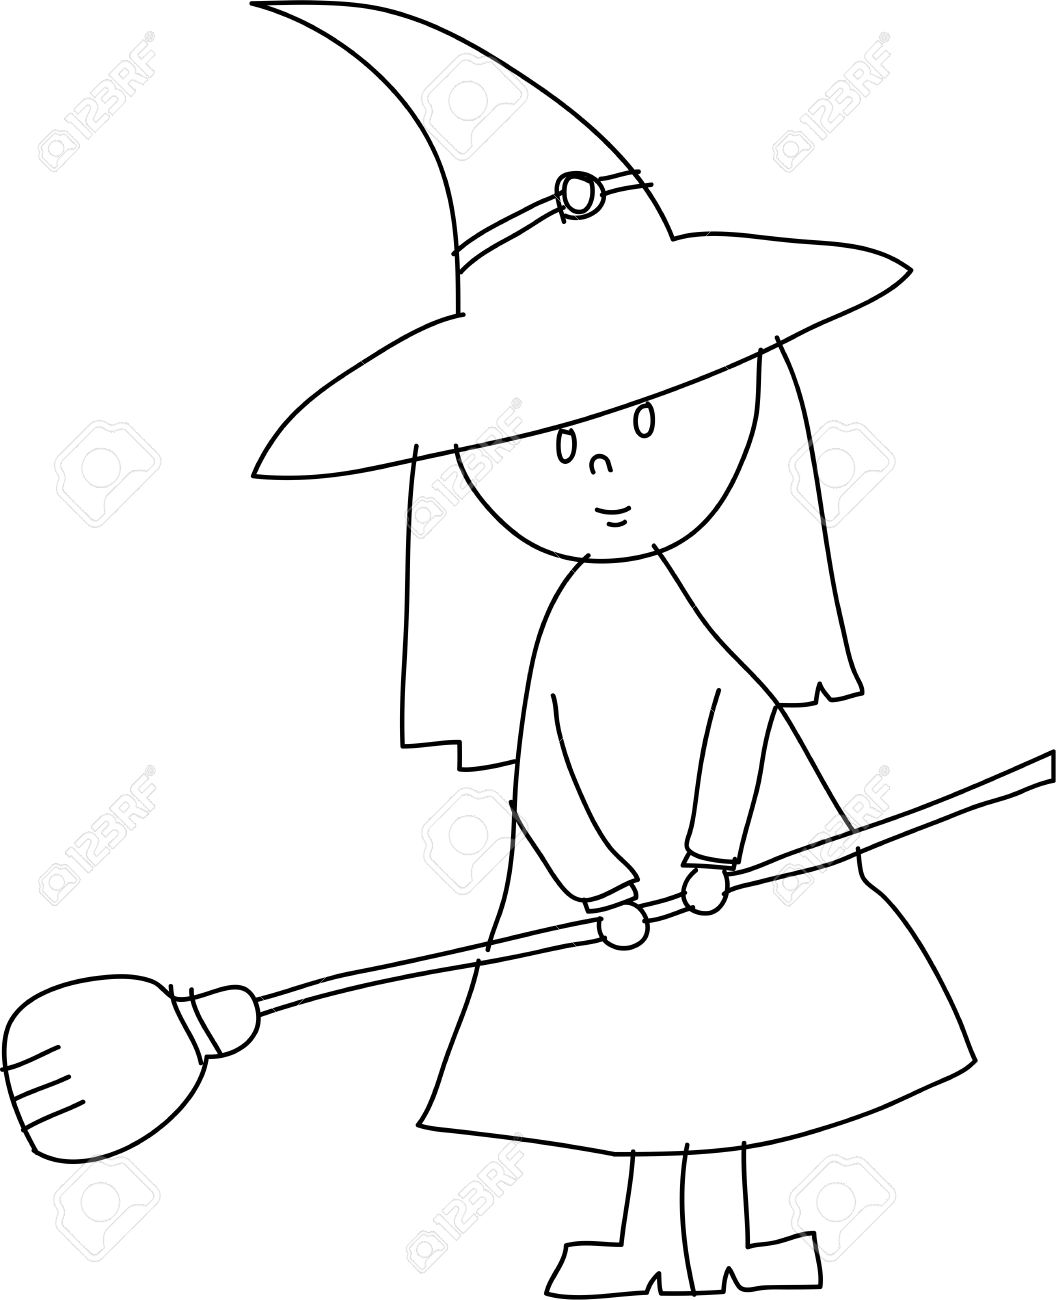 1056x1300 Hand Draw Halloween Witch Cartoon Vector Royalty Free Cliparts